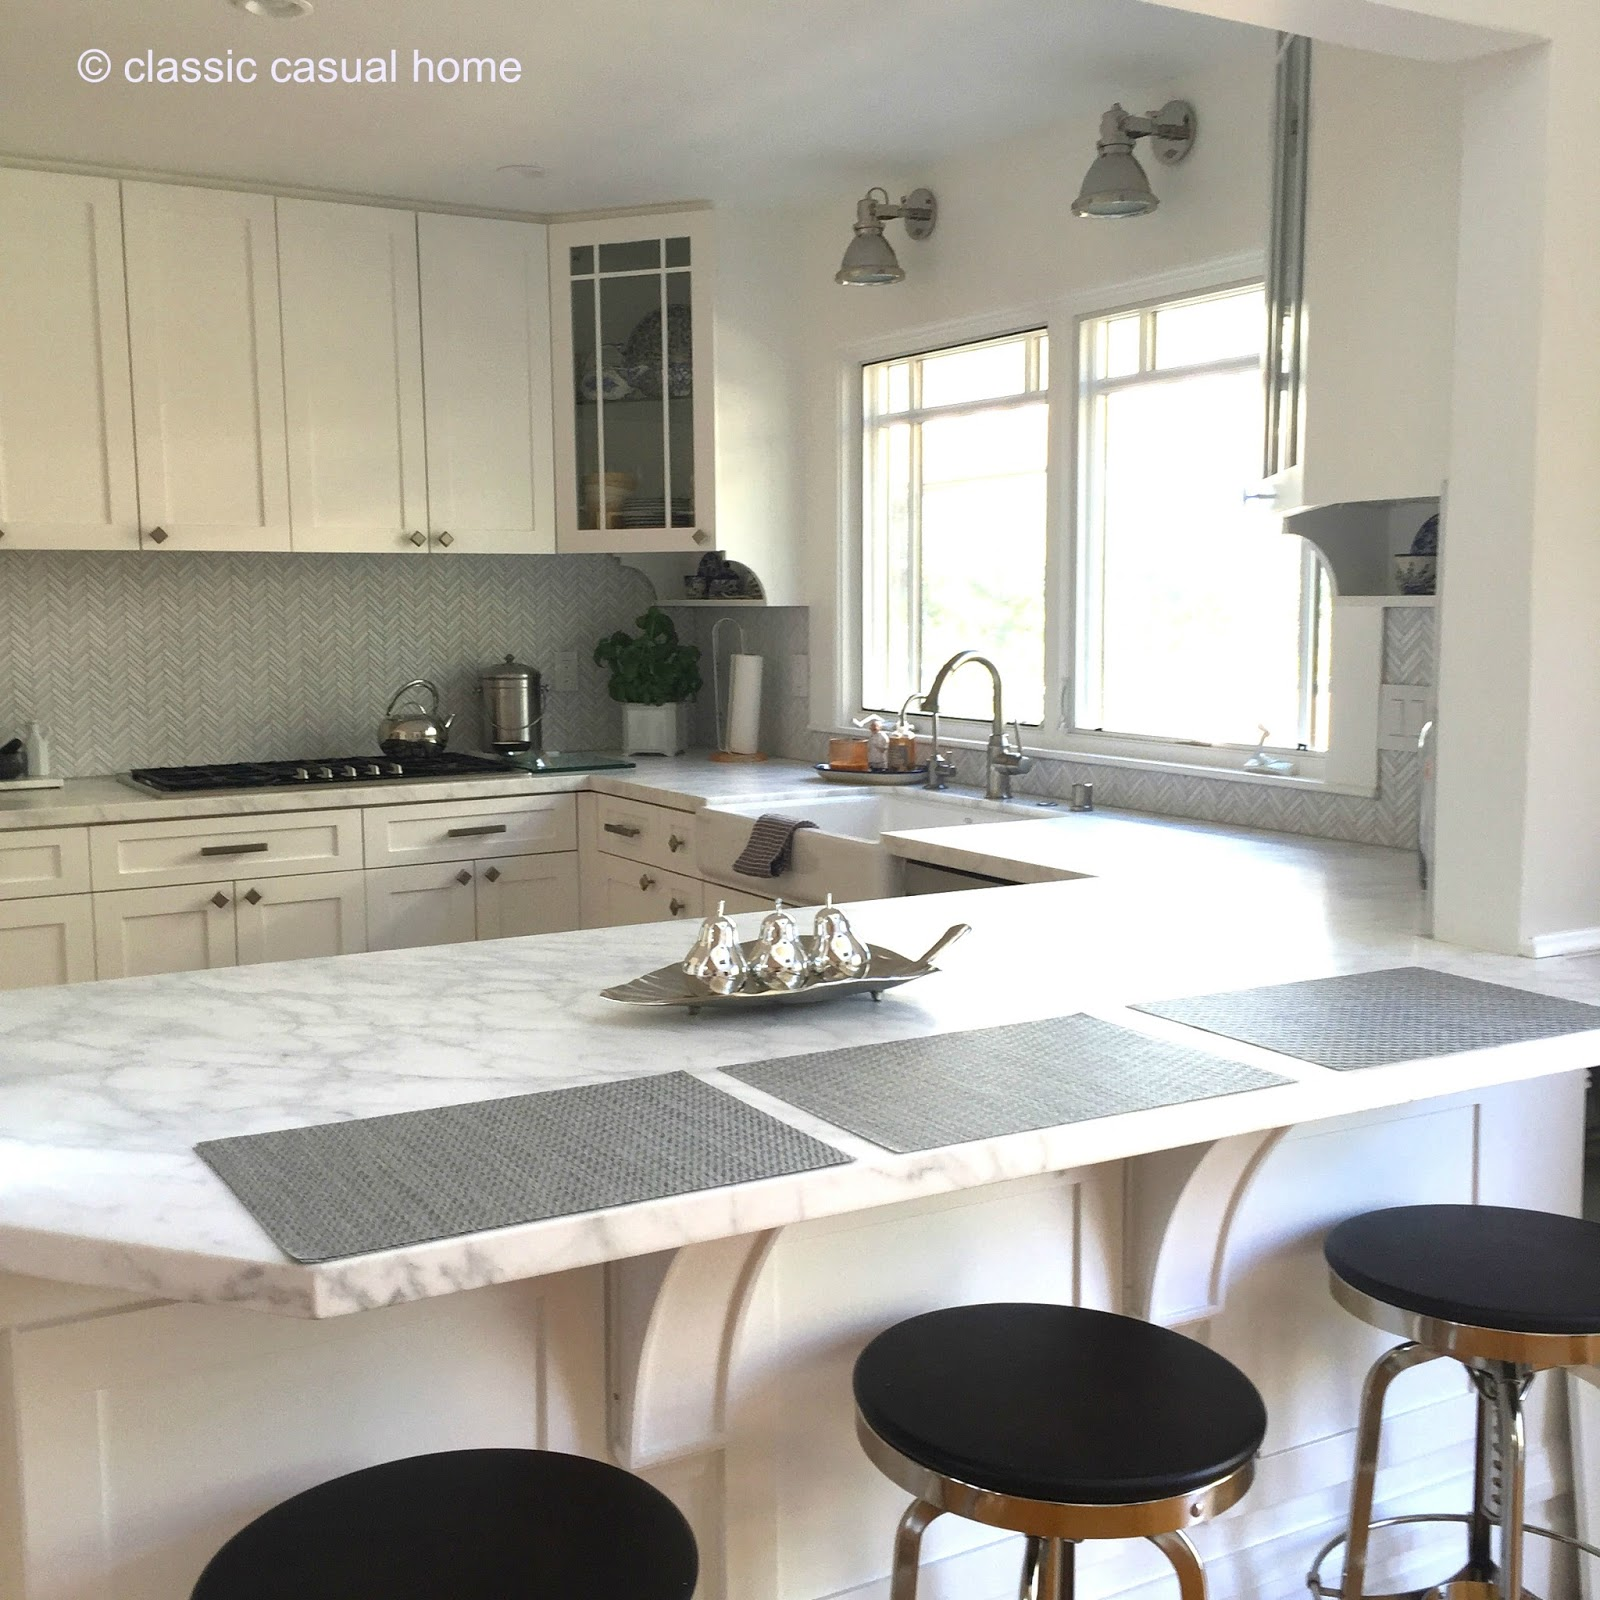 Fresh White Kitchen Makeover: Before and After - Classic Casual Home